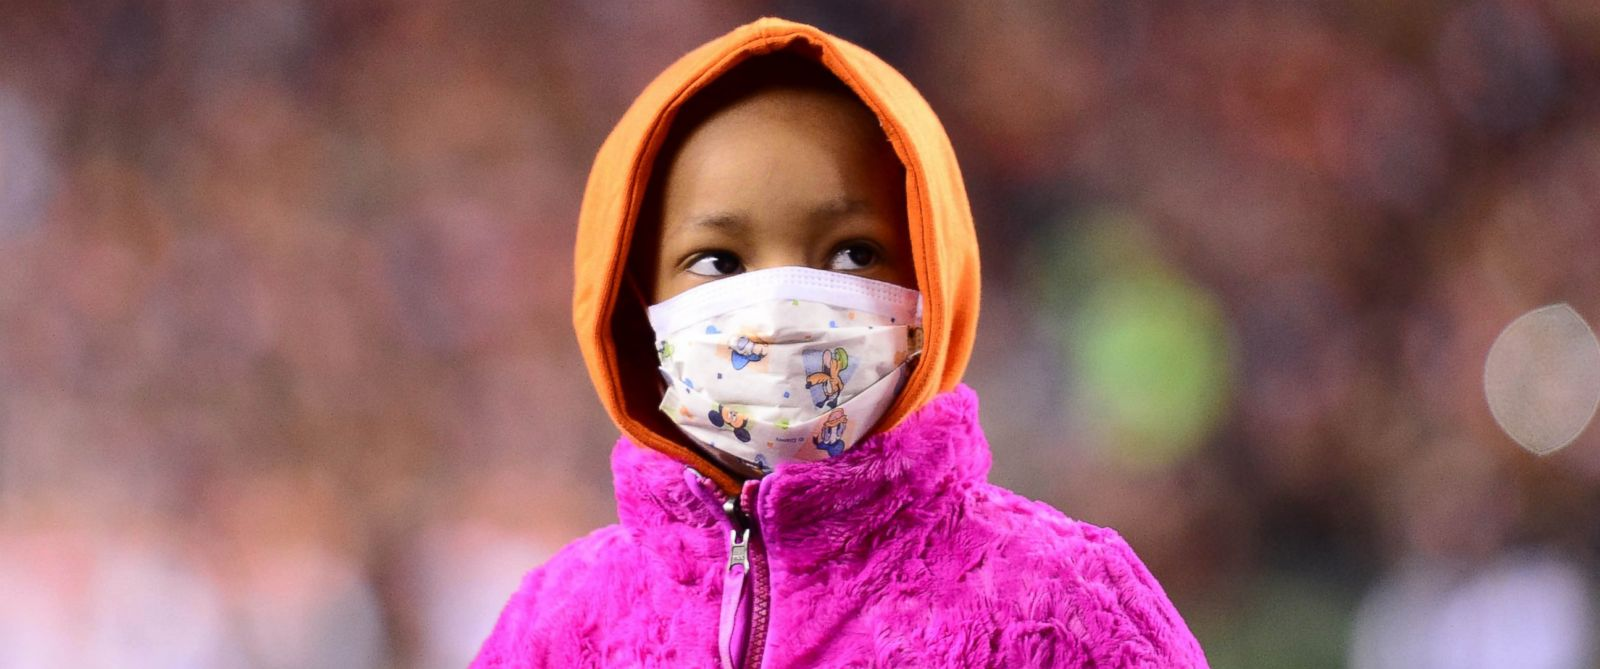 PHOTO: Leah Still daughter of Cincinnati Bengals defensive tackle Devon Still stands on the field during the first quarter against the Cleveland Browns at Paul Brown Stadium, Nov. 6, 2014.